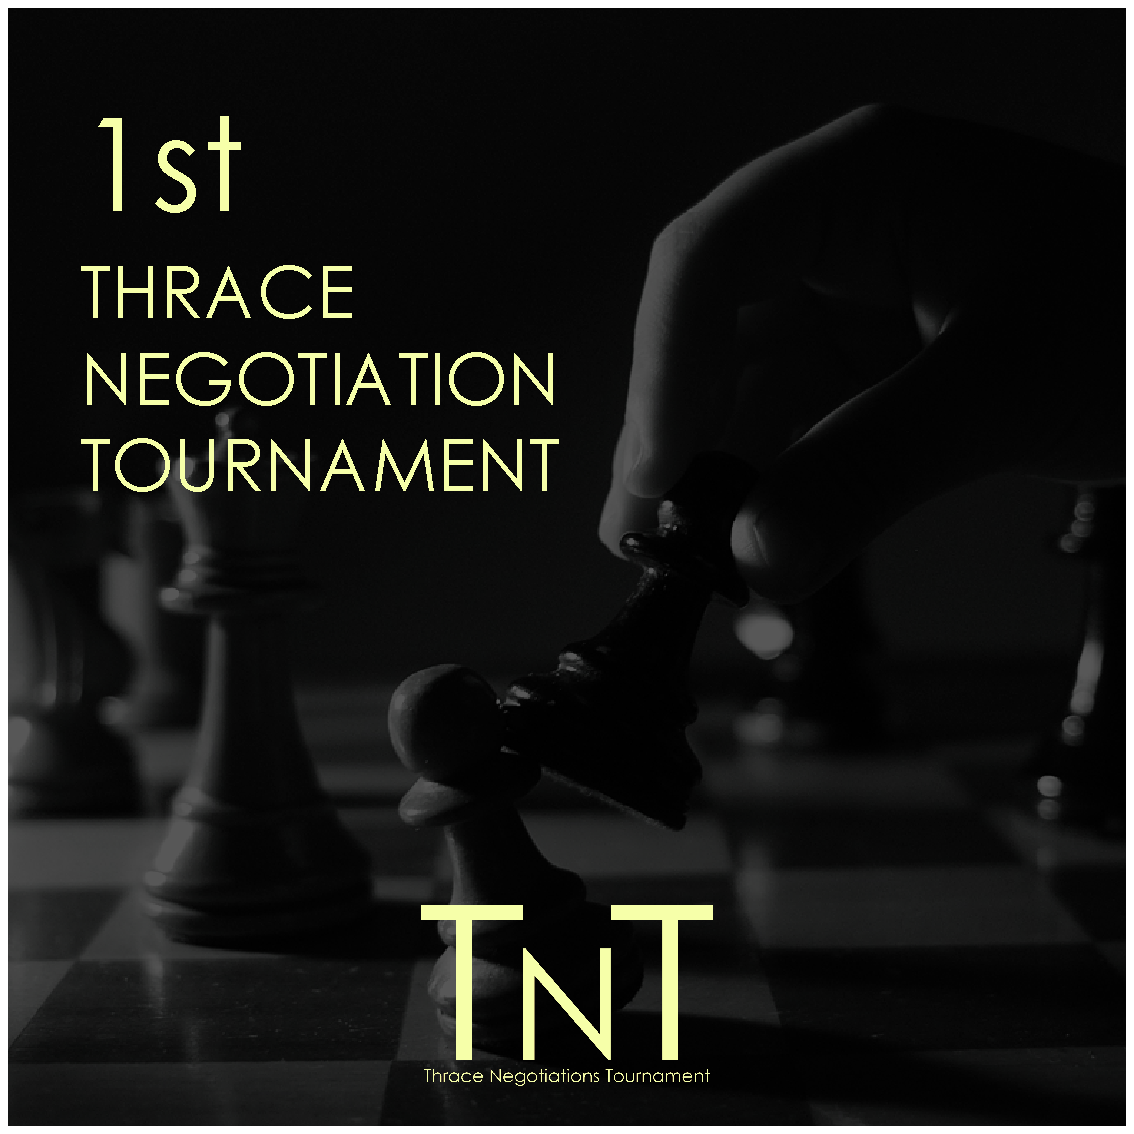 Thrace Negotiations Tournament-Χanthi Techlab